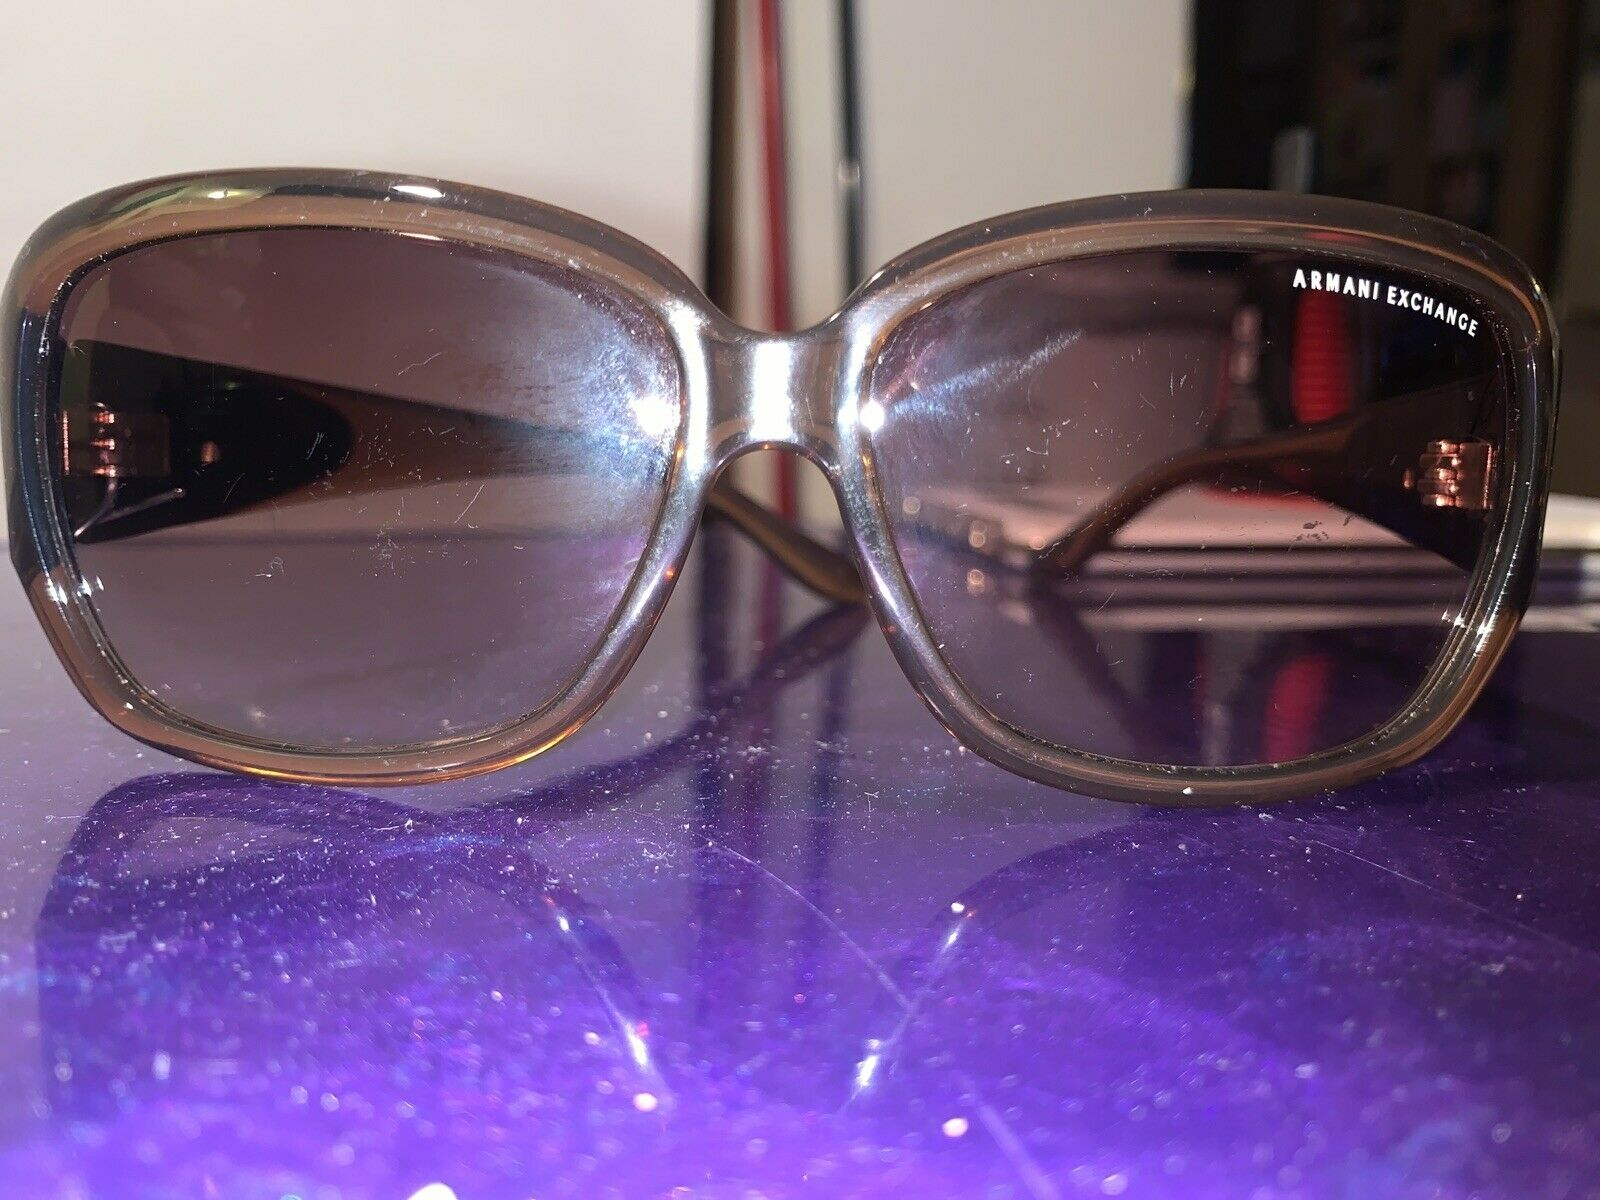 Armani Exchange Sunglasses Missing One Screw Used Condition 6 From 10